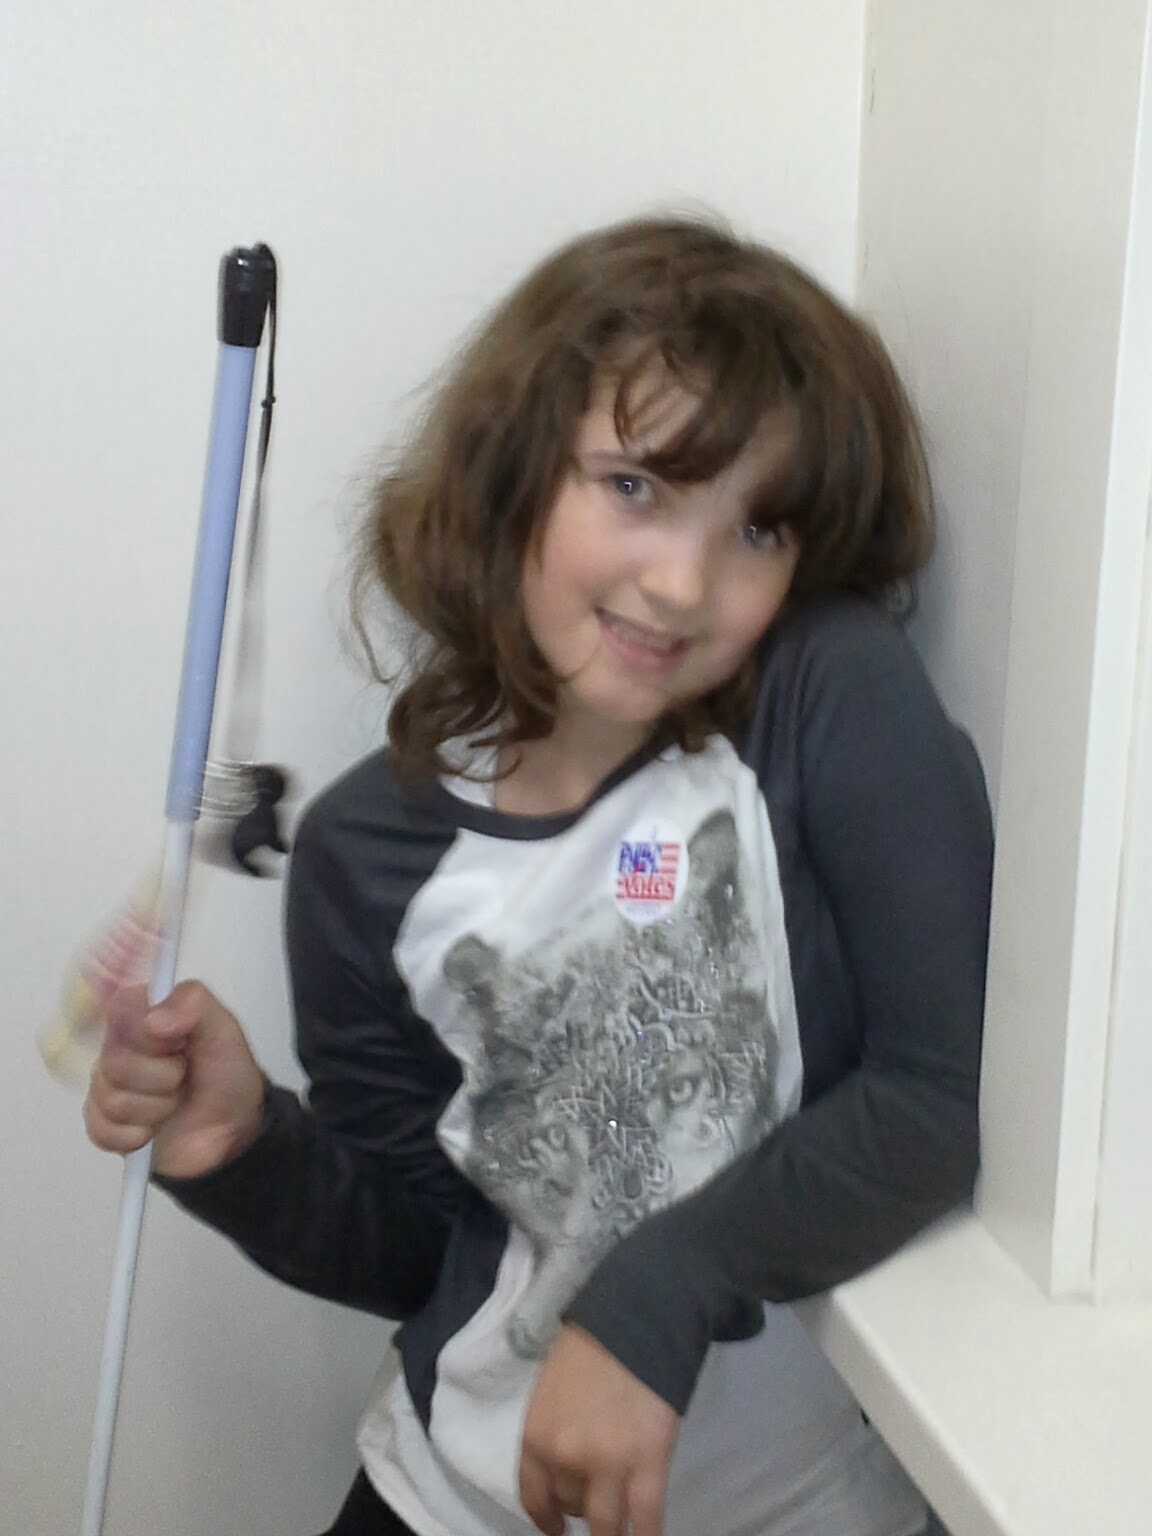 A girl with dark hair wearing a wolf long sleeve shirt and holding a white cane smiles